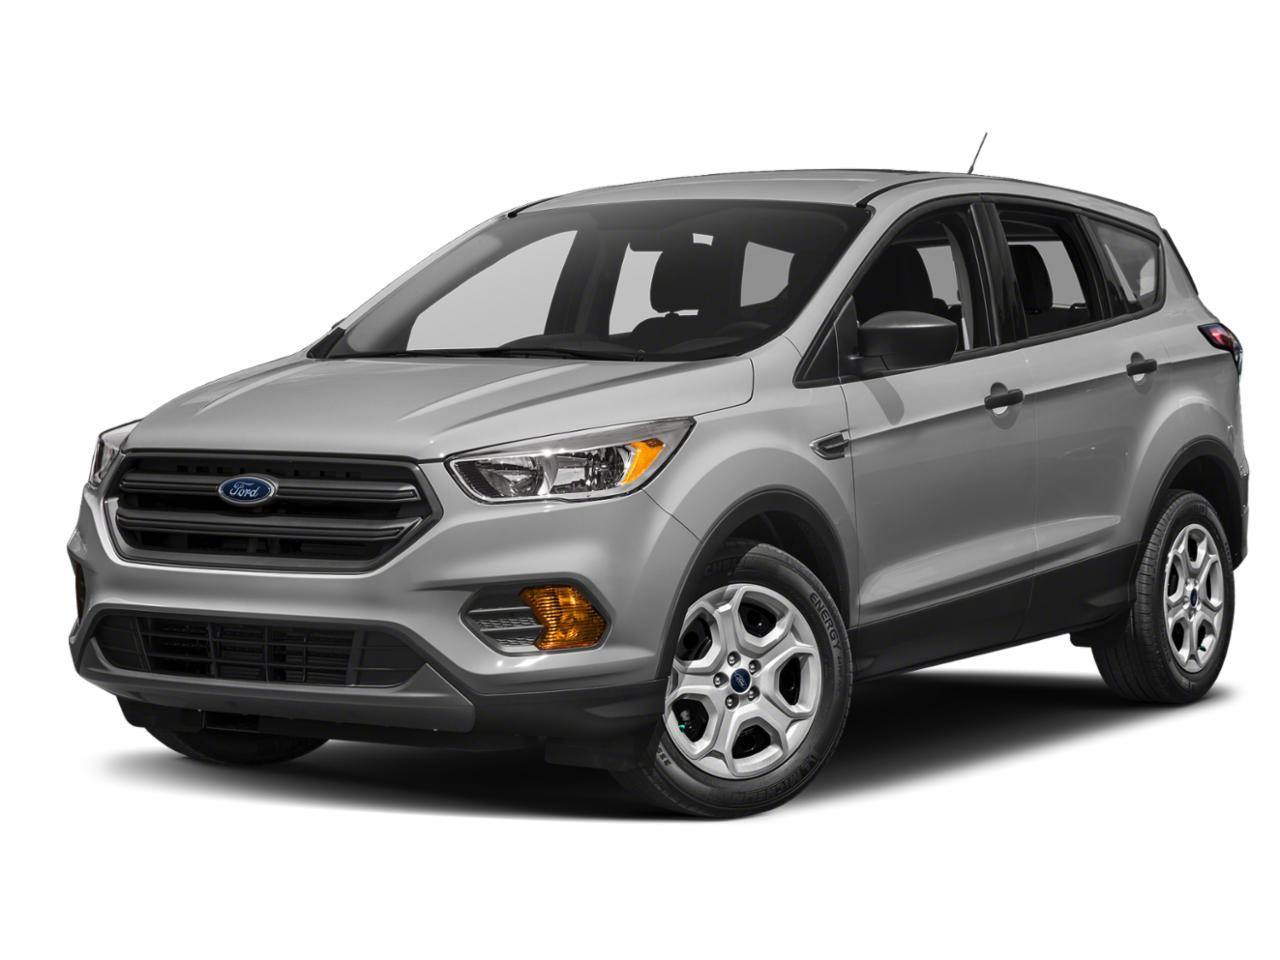 2018 Ford Escape Vehicle Photo in MEDINA, OH 44256-9631